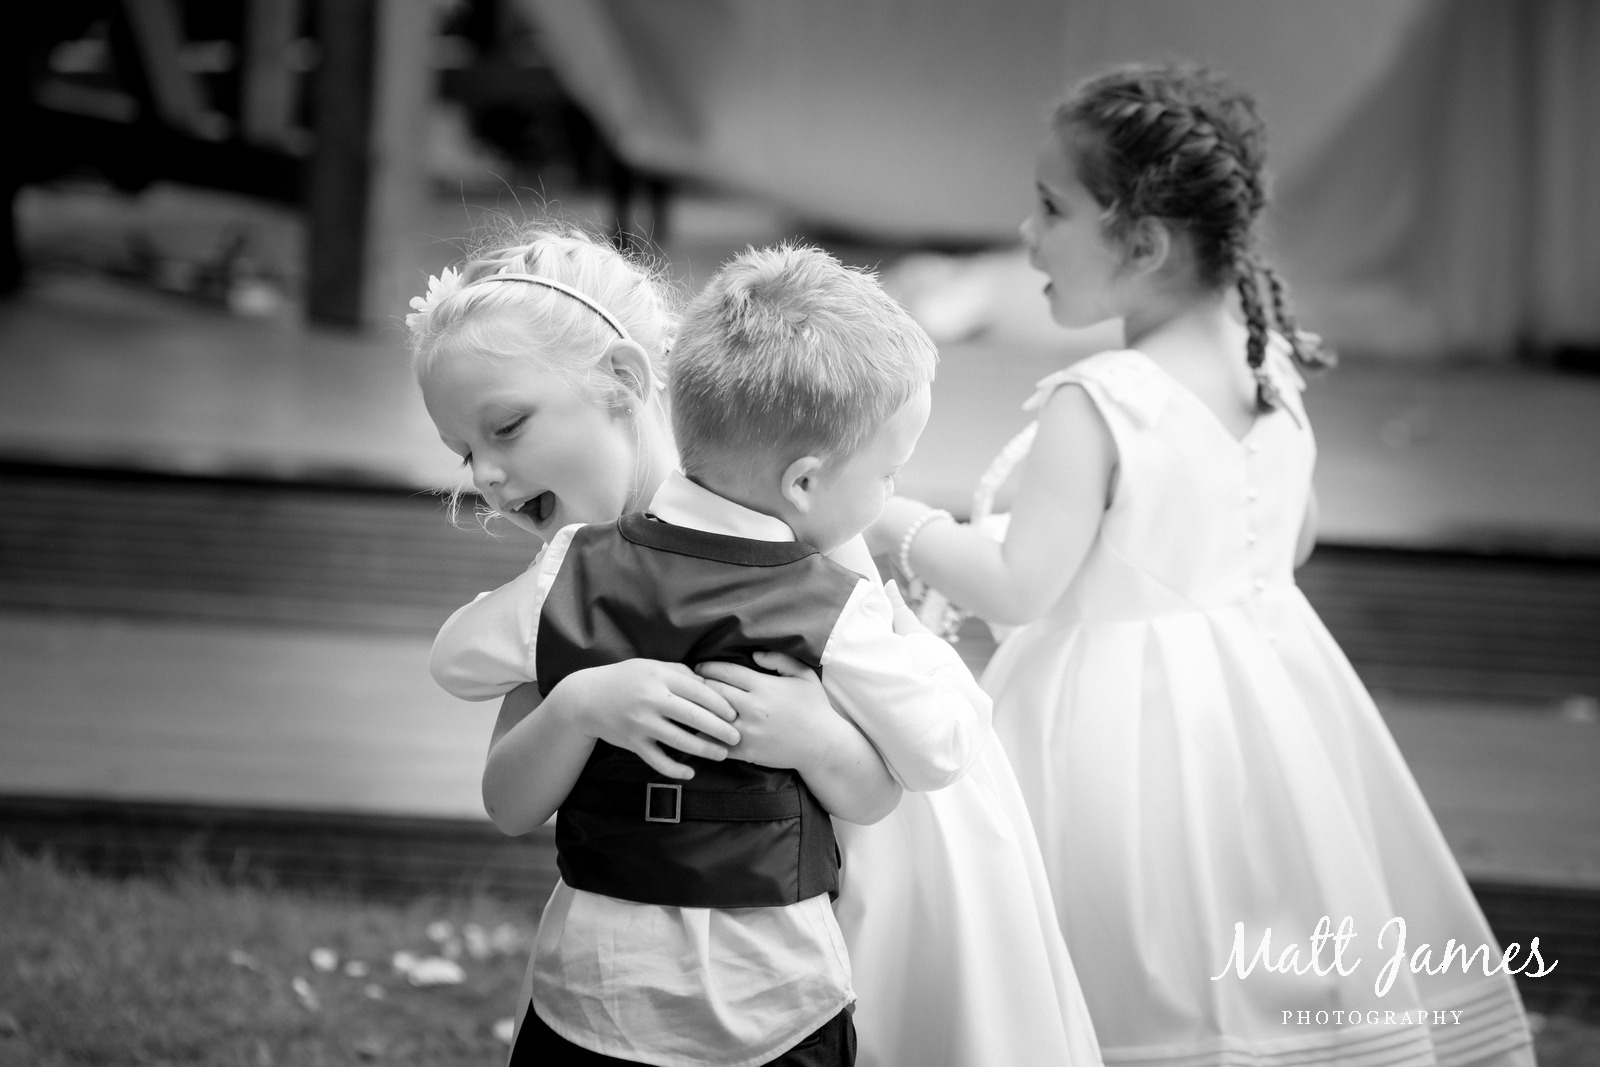 Matt-James-Photography-Wedding-photographer32